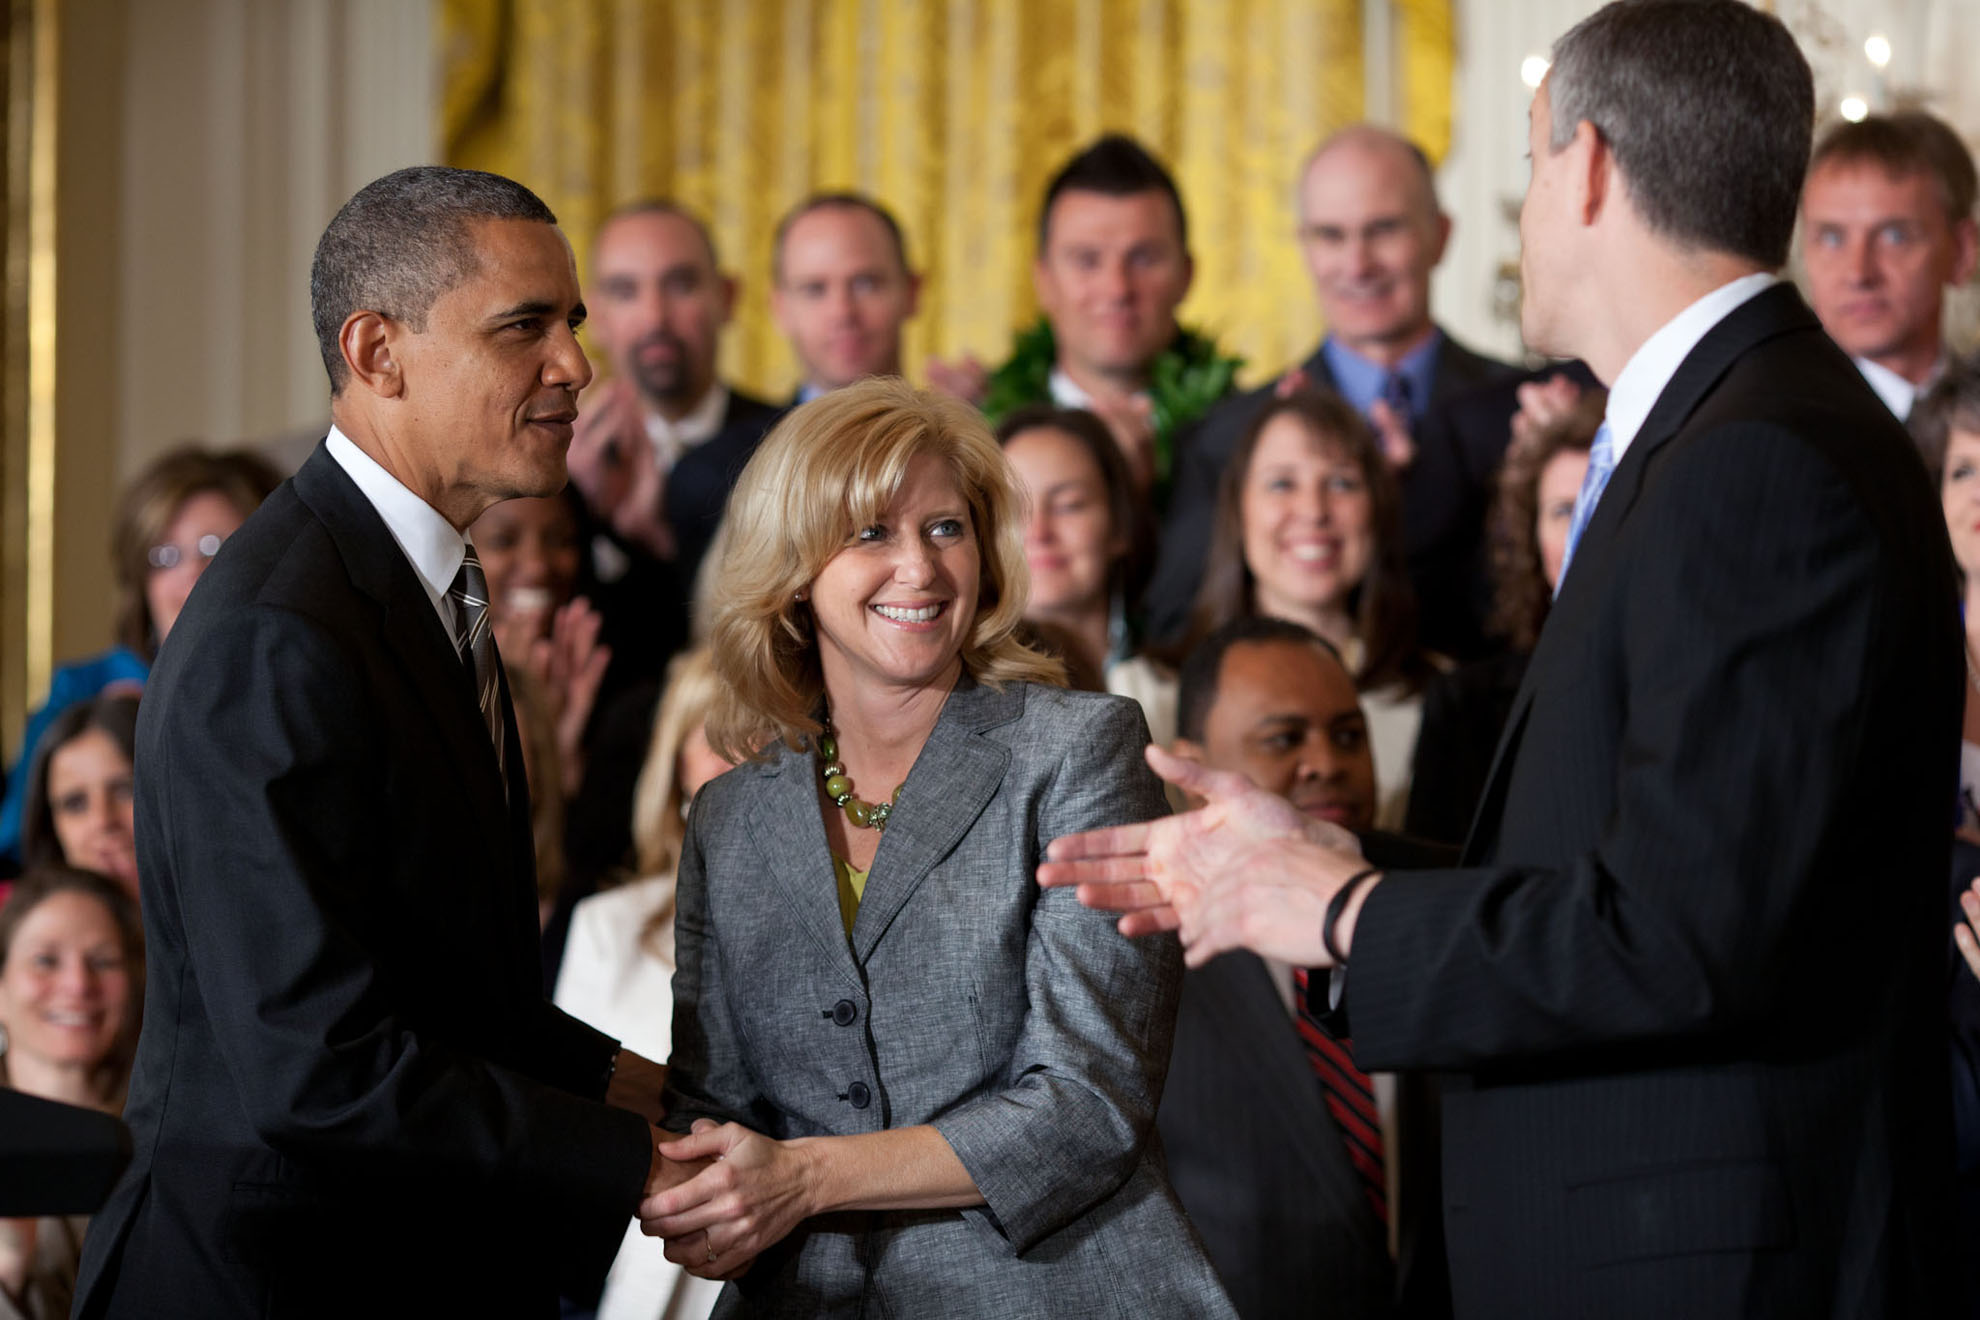 President Obama and Education Secretary Arne Duncan with 2012 National Teacher of the Year, Rebecca Mieliwocki